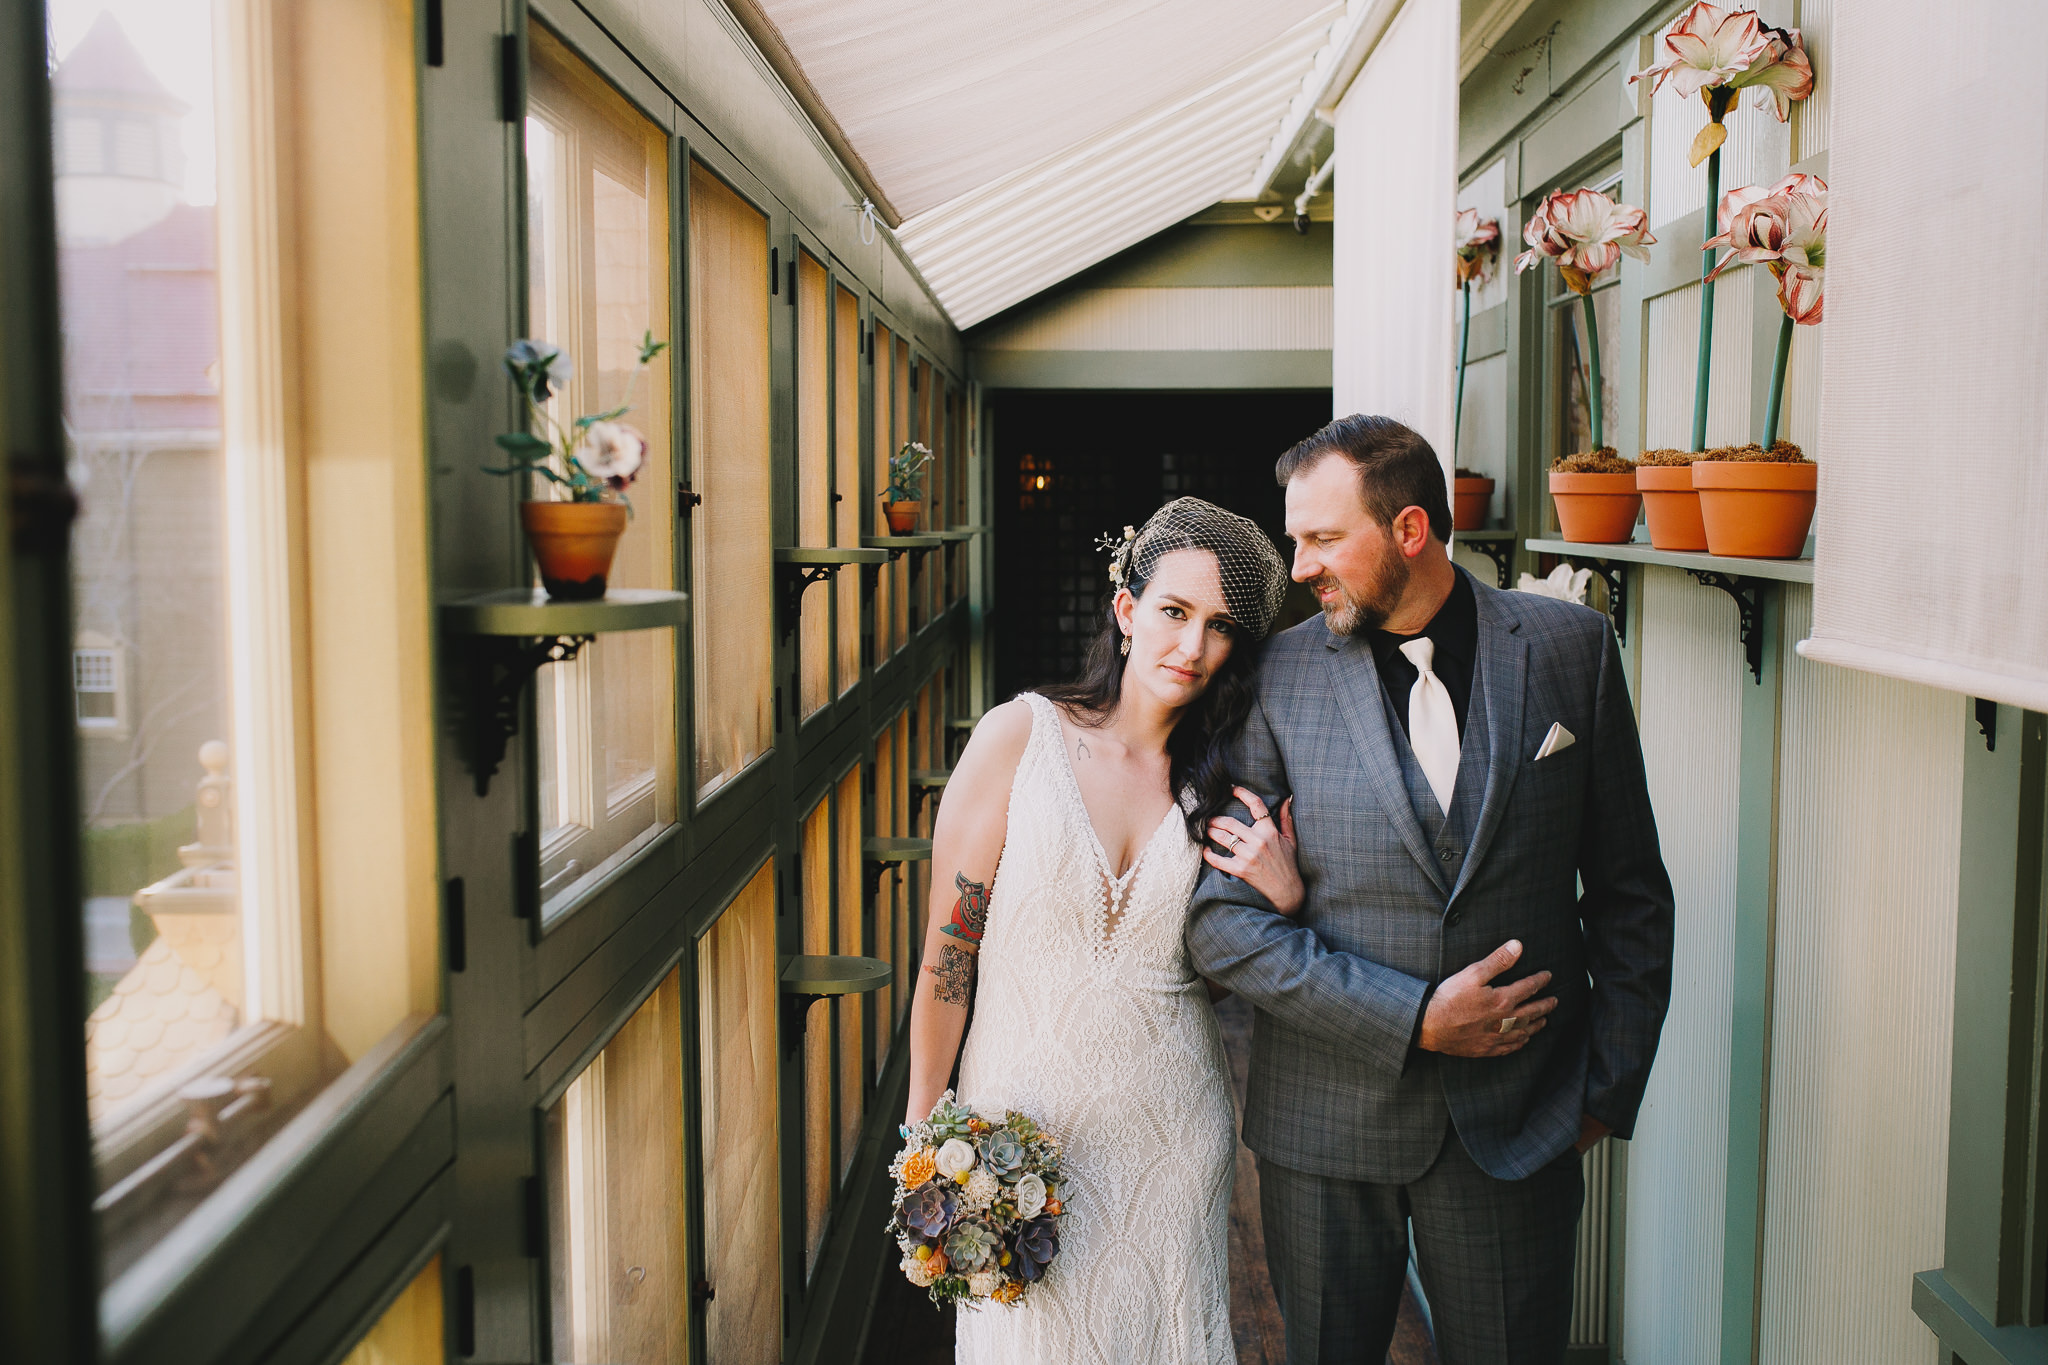 Archer Inspired Photography Sara and Aaron Winchester Mystery House NorCal San Jose California Wedding Photographer-280.jpg